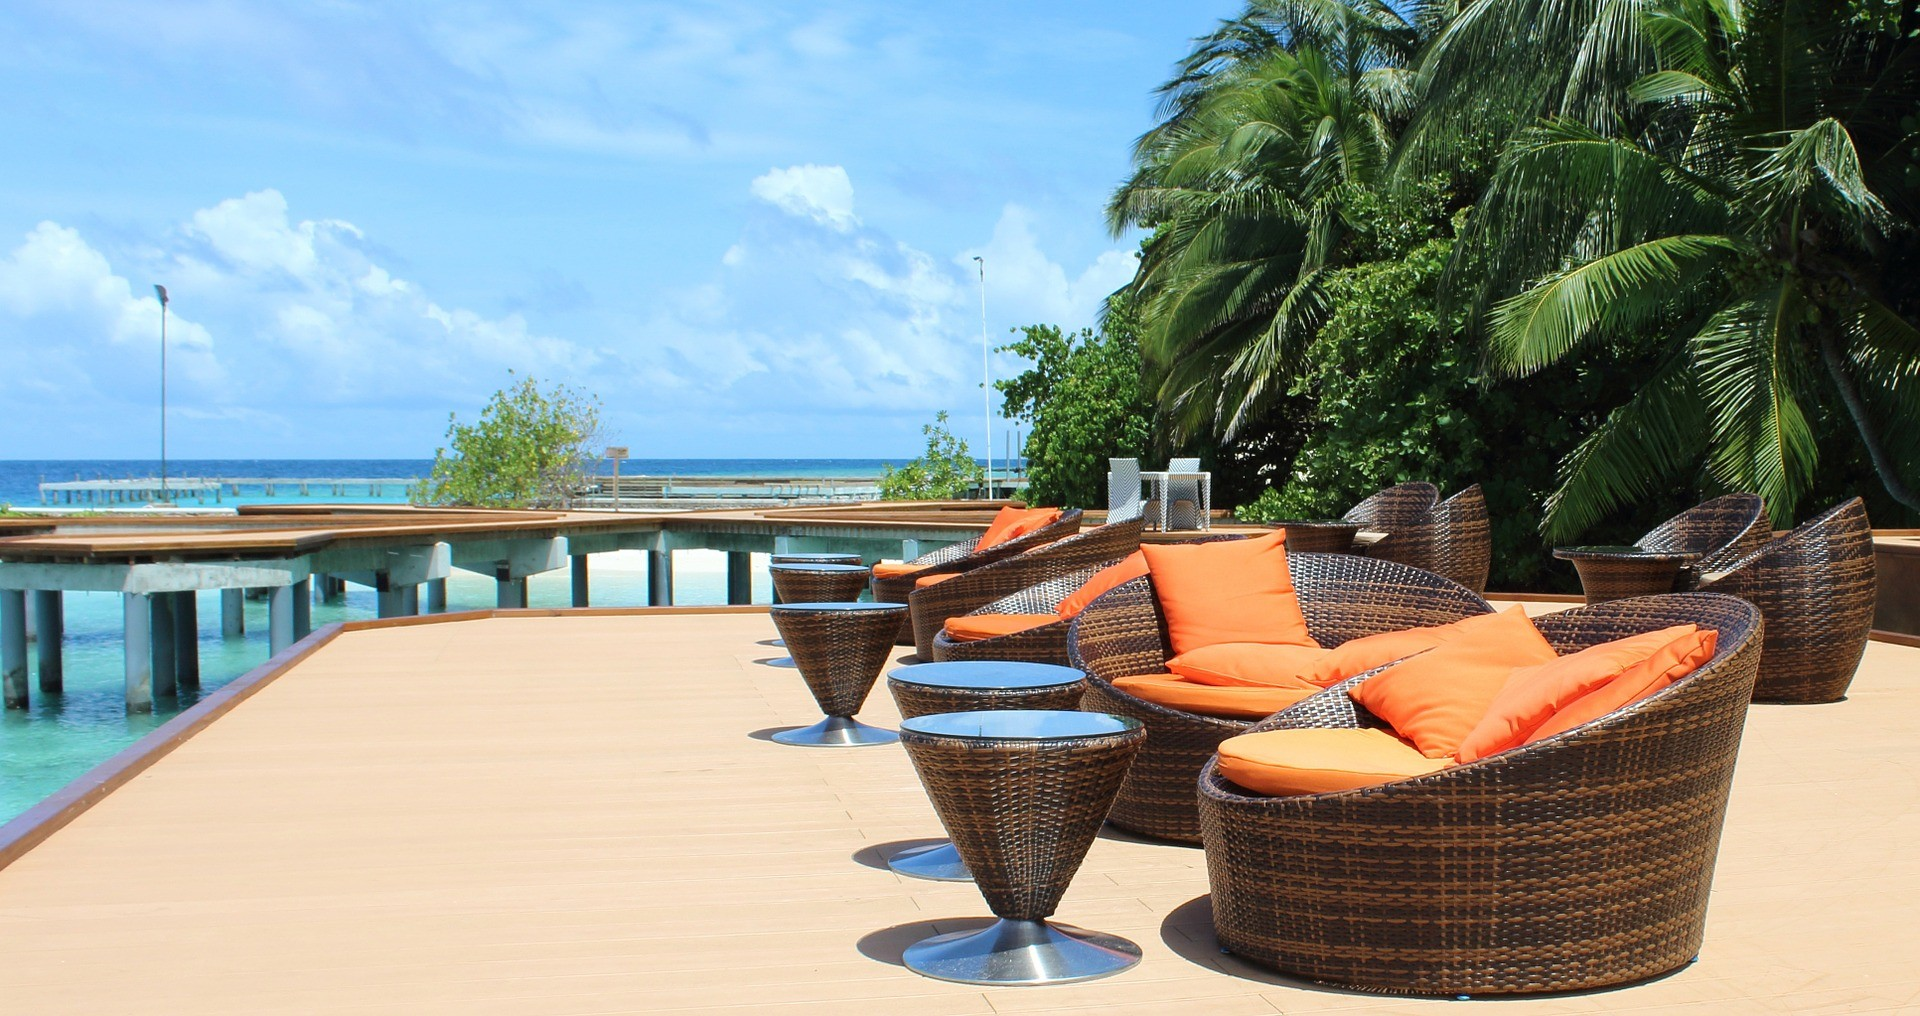 news-main-jll-releases-maldives-hotels-recovery-guide.1601374587.jpg